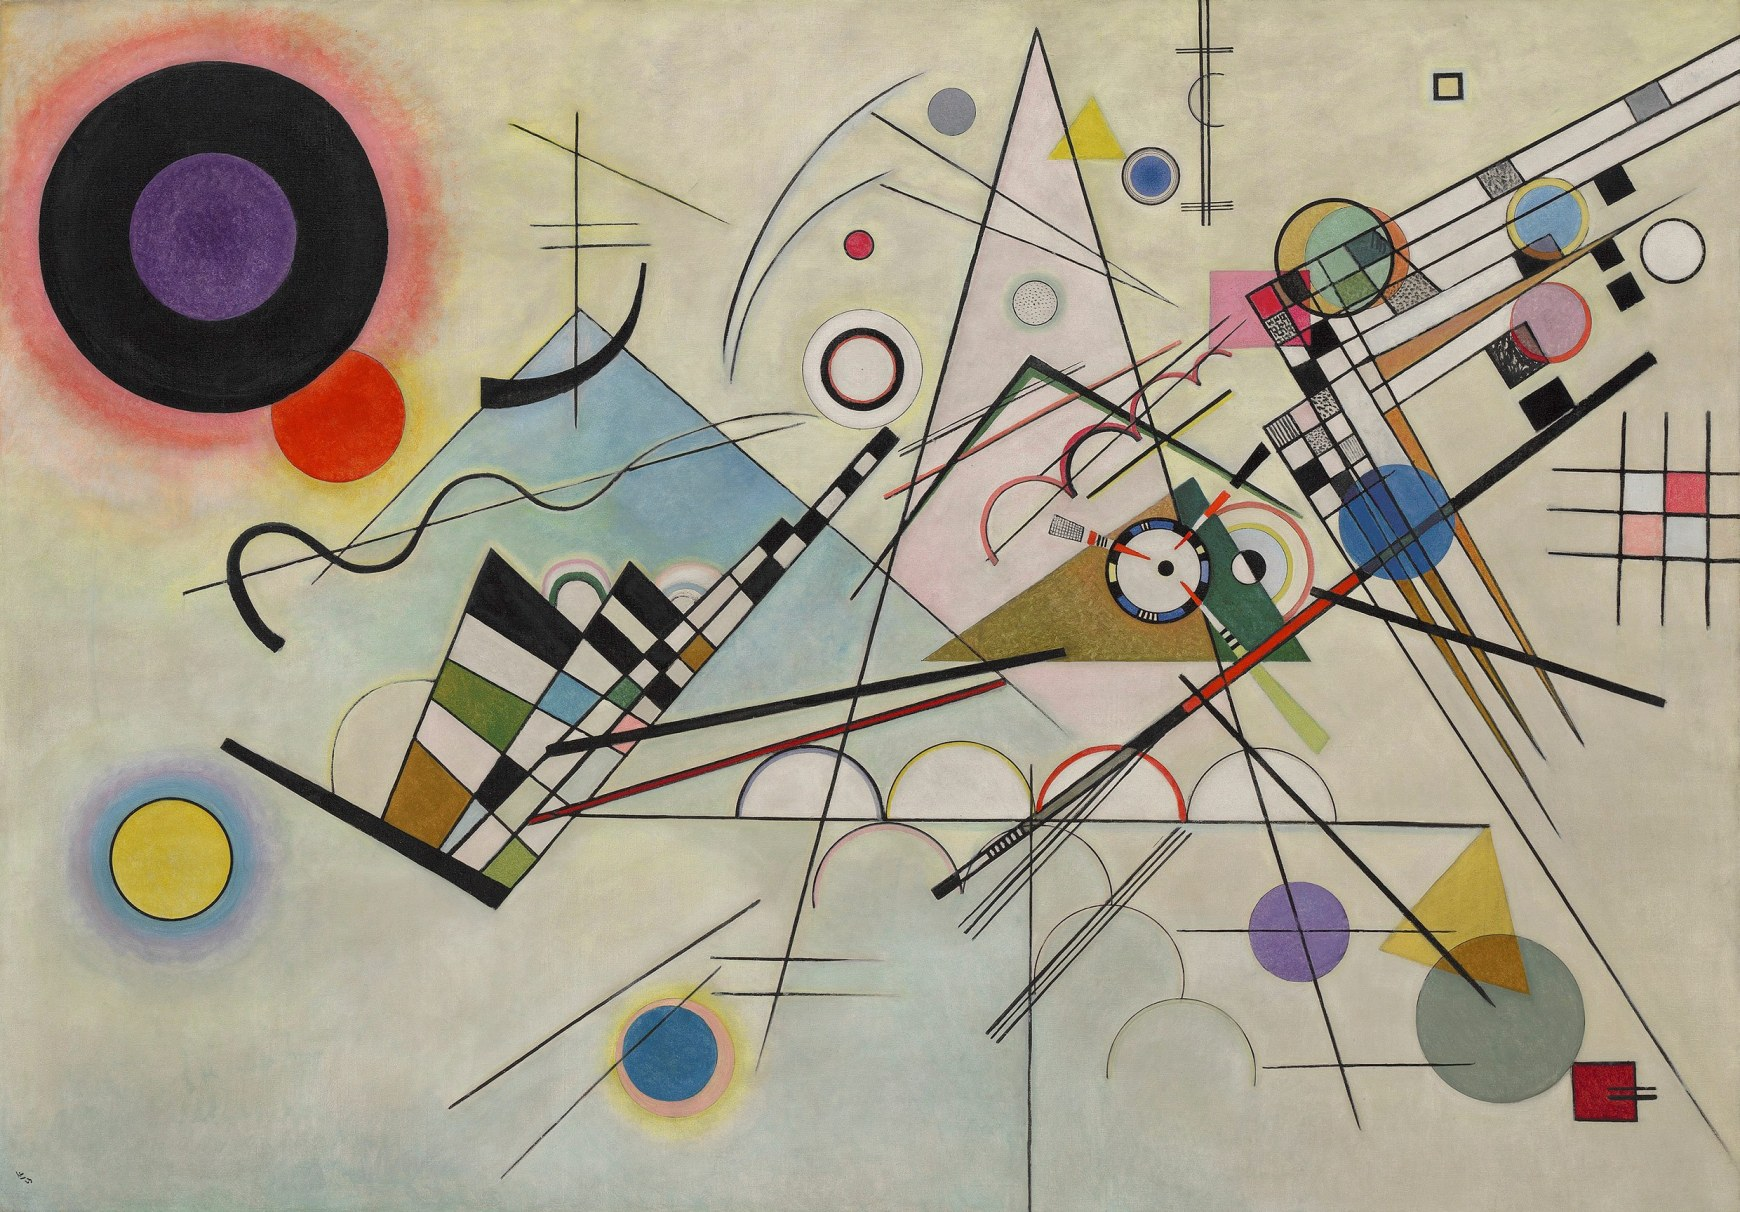 artwork-vasily-kandinsky-composition-8-37-262